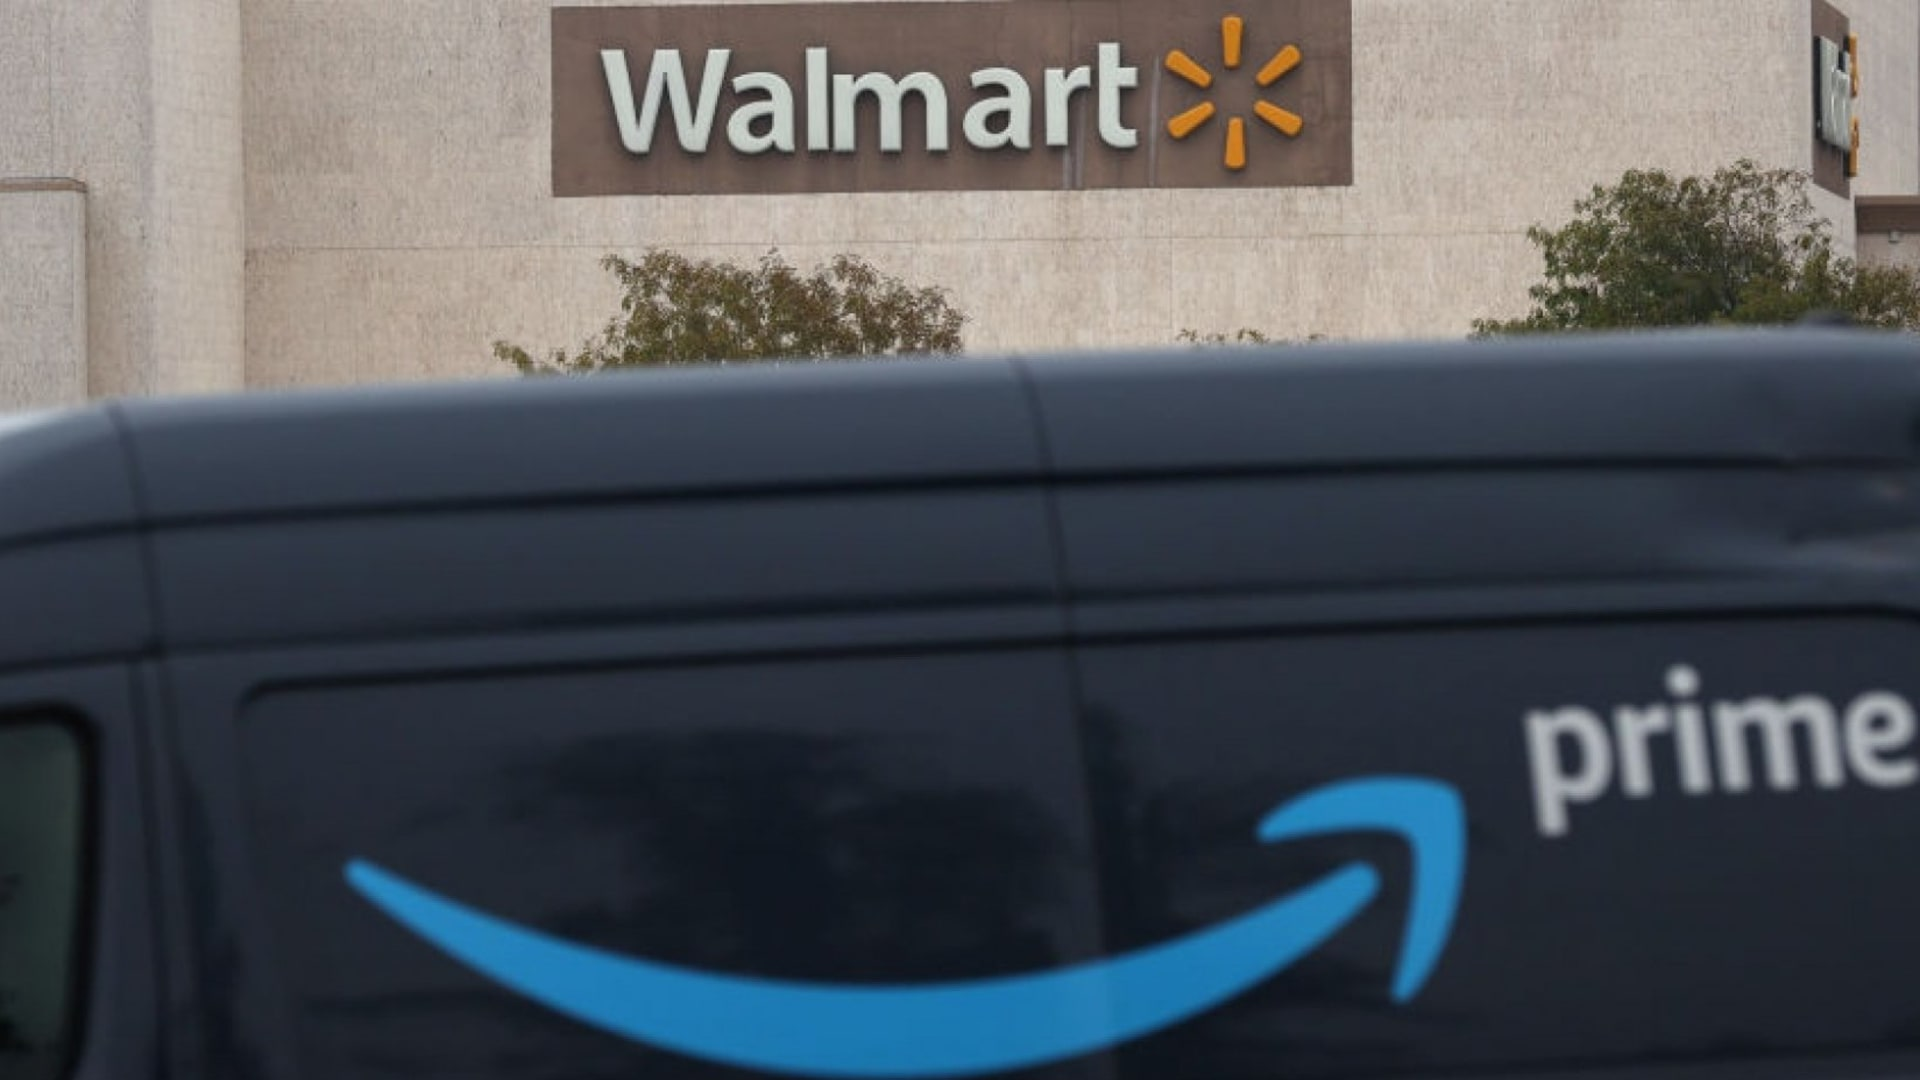 Amazon Just Dethroned Walmart, and It's the End of the (Retail) World As We Know It